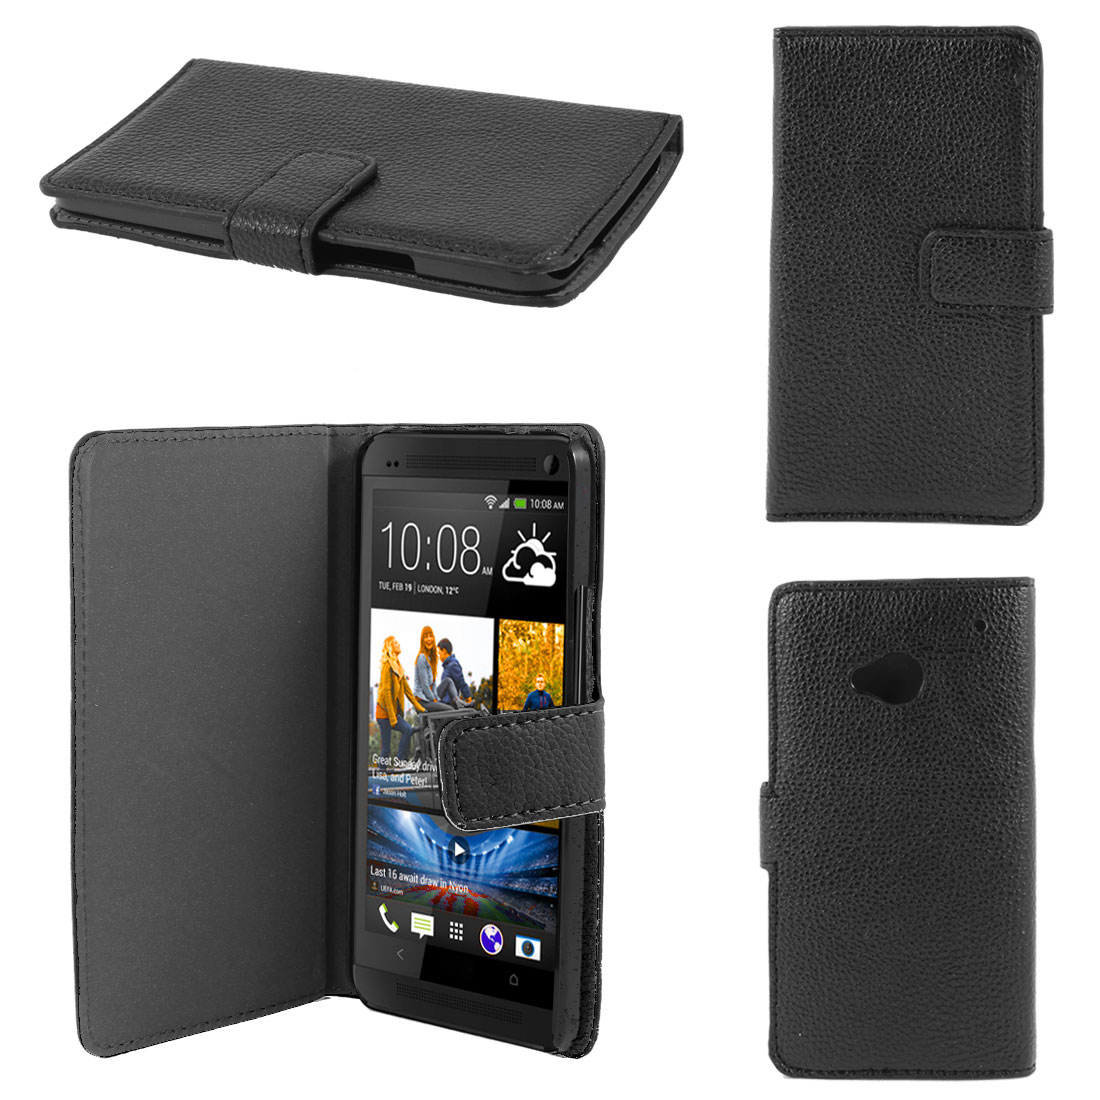 Black Faux Leather Litchi Print Magnetic Flip Case Cover Pouch for HTC one M7